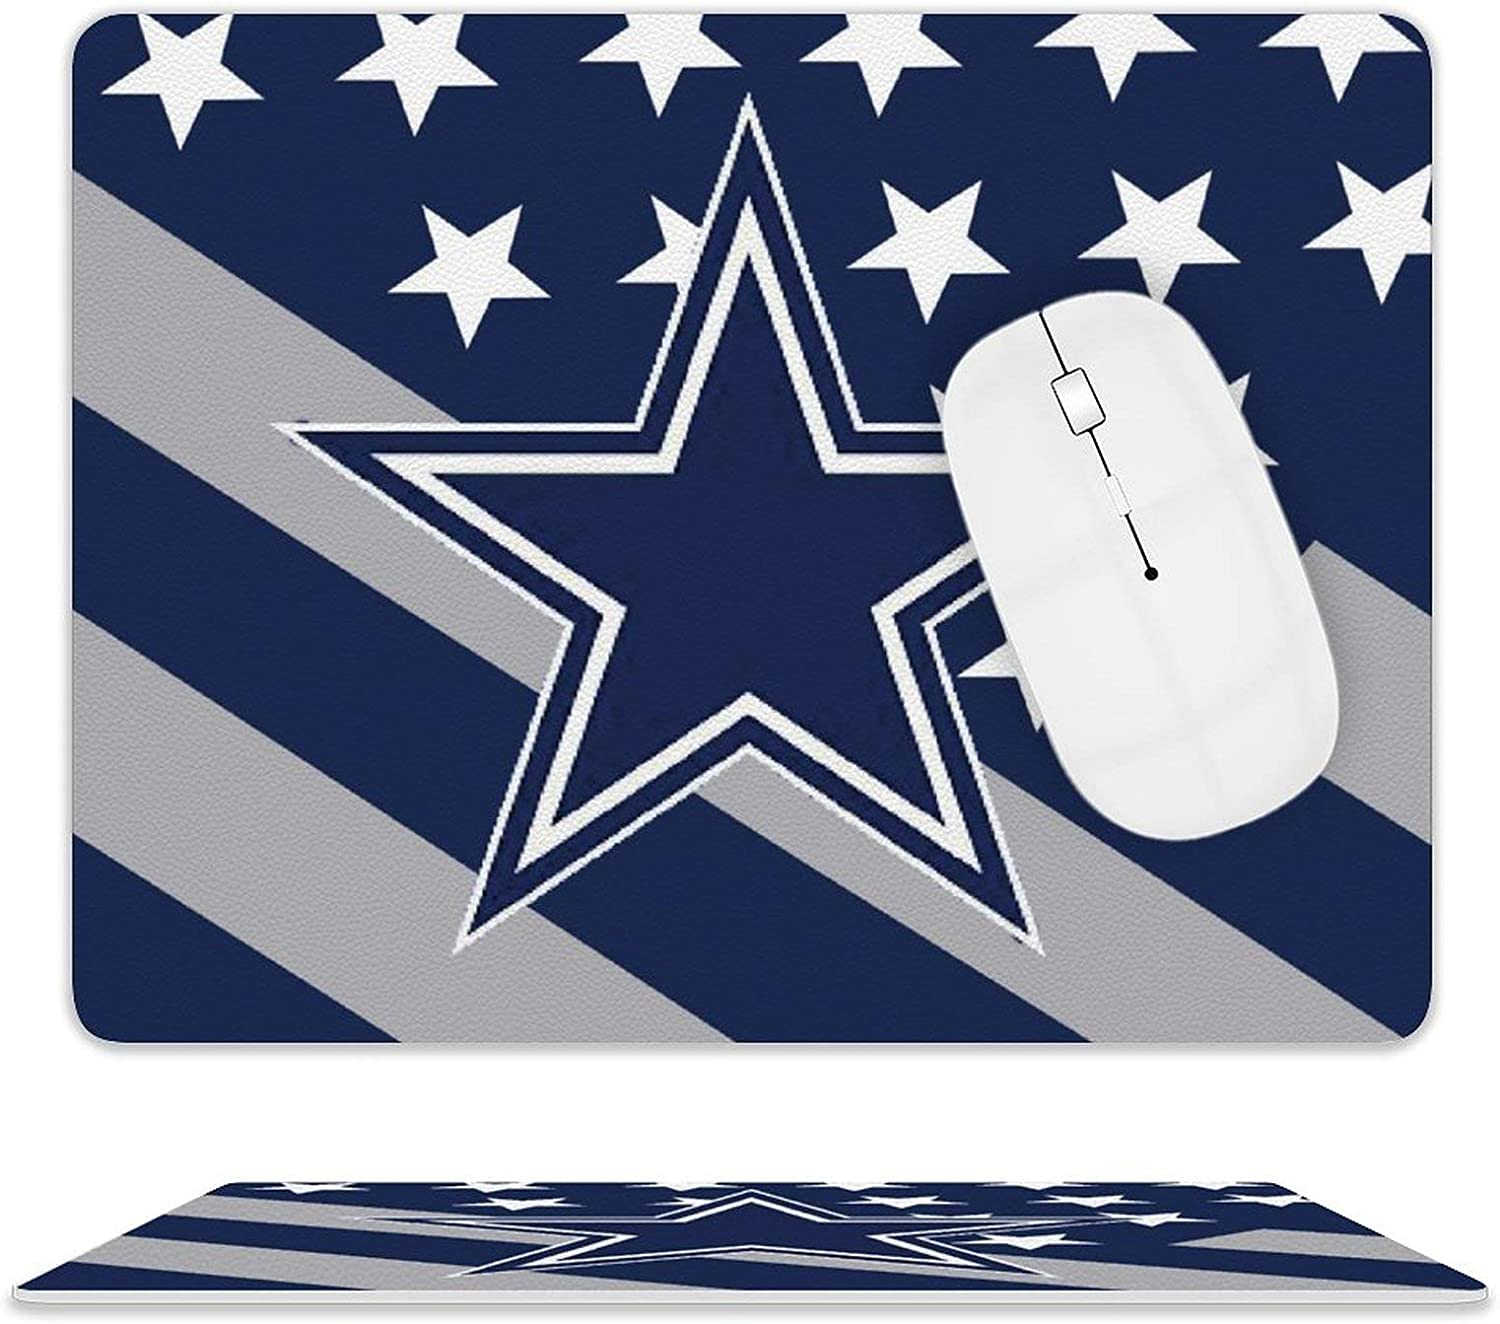 G-III Sports Dallas Cowboys Computer Mouse pad Non-Slip Rubber Base with Stitched Edges for Office (10